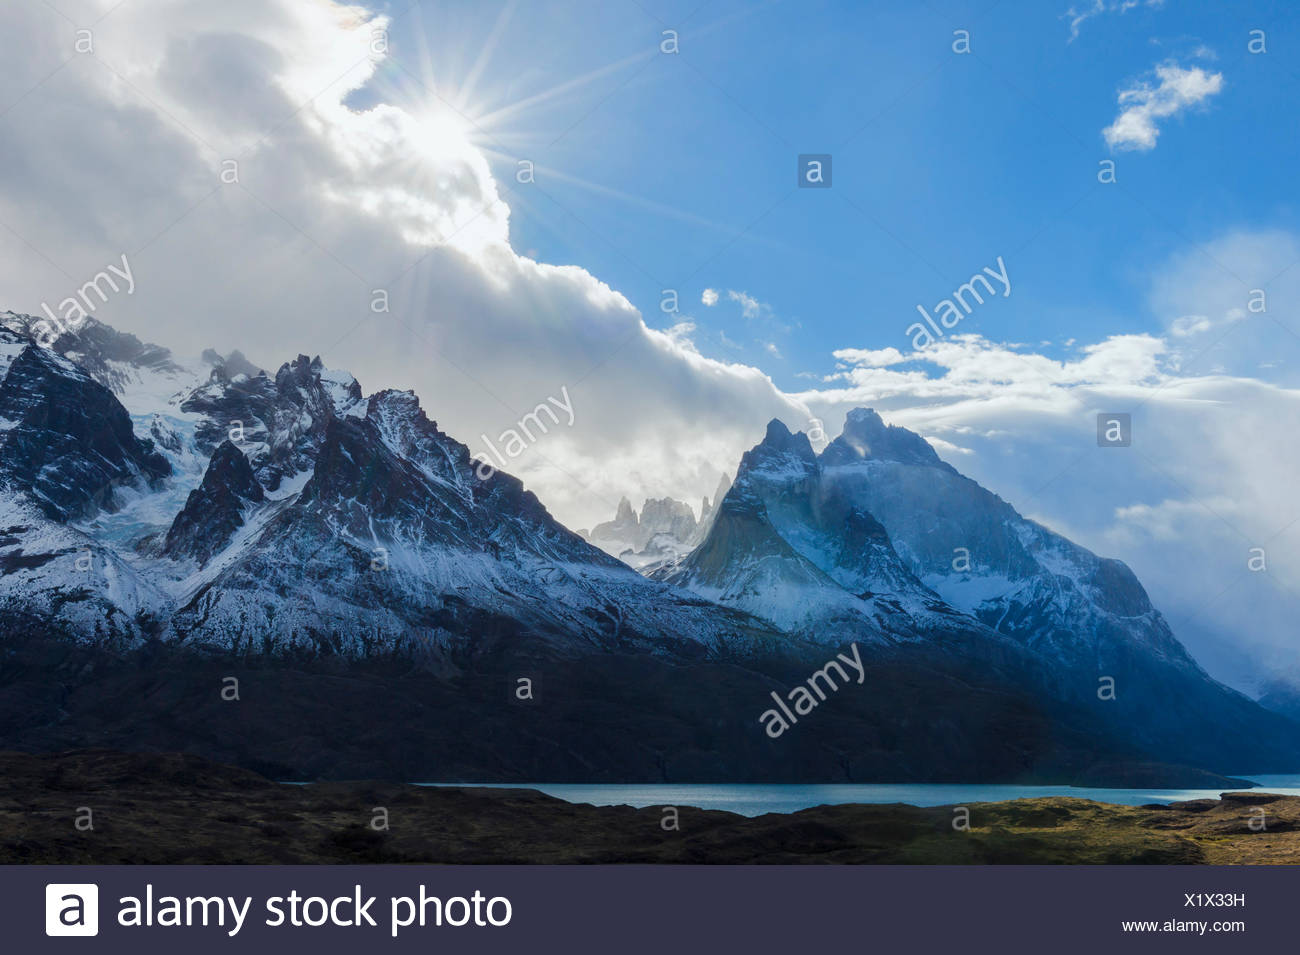 Cloud formations over Lago Nordenskjold, Torres del Paine National Park, Chilean Patagonia, Chile - Stock Image